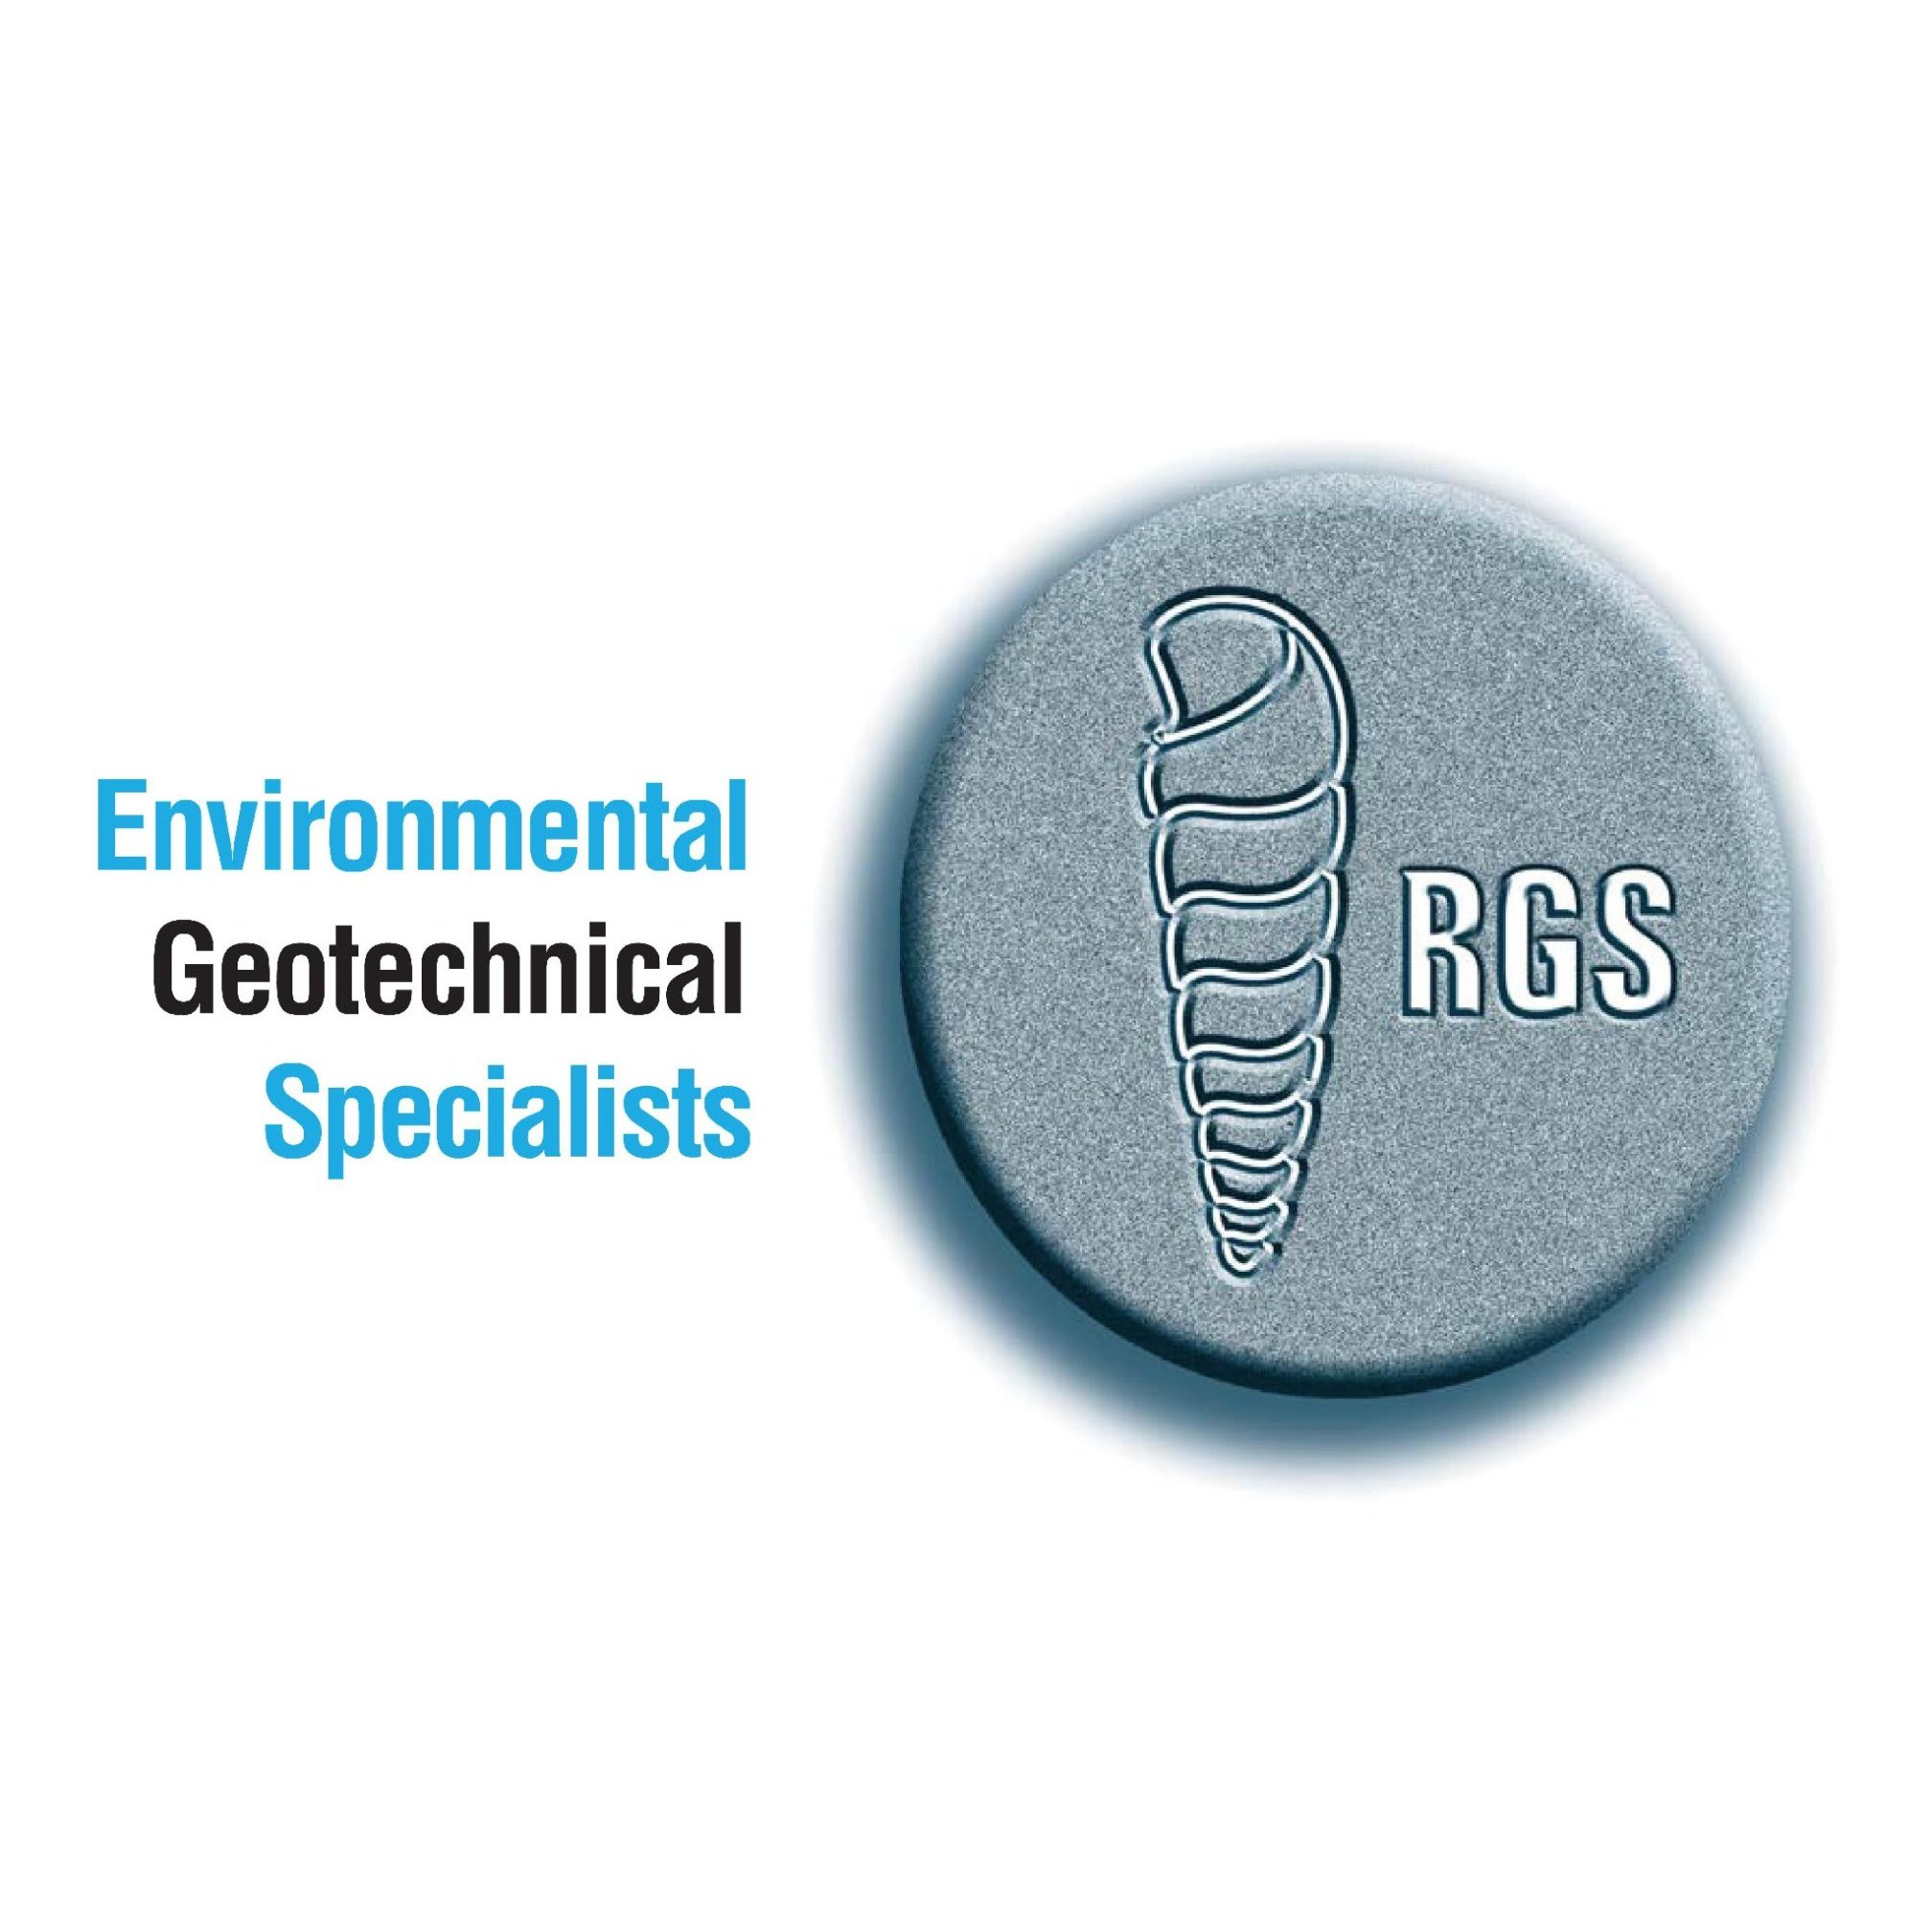 Rogers Geotechnical Services Ltd - Huddersfield, West Yorkshire HD8 8LU - 08435 066687   ShowMeLocal.com